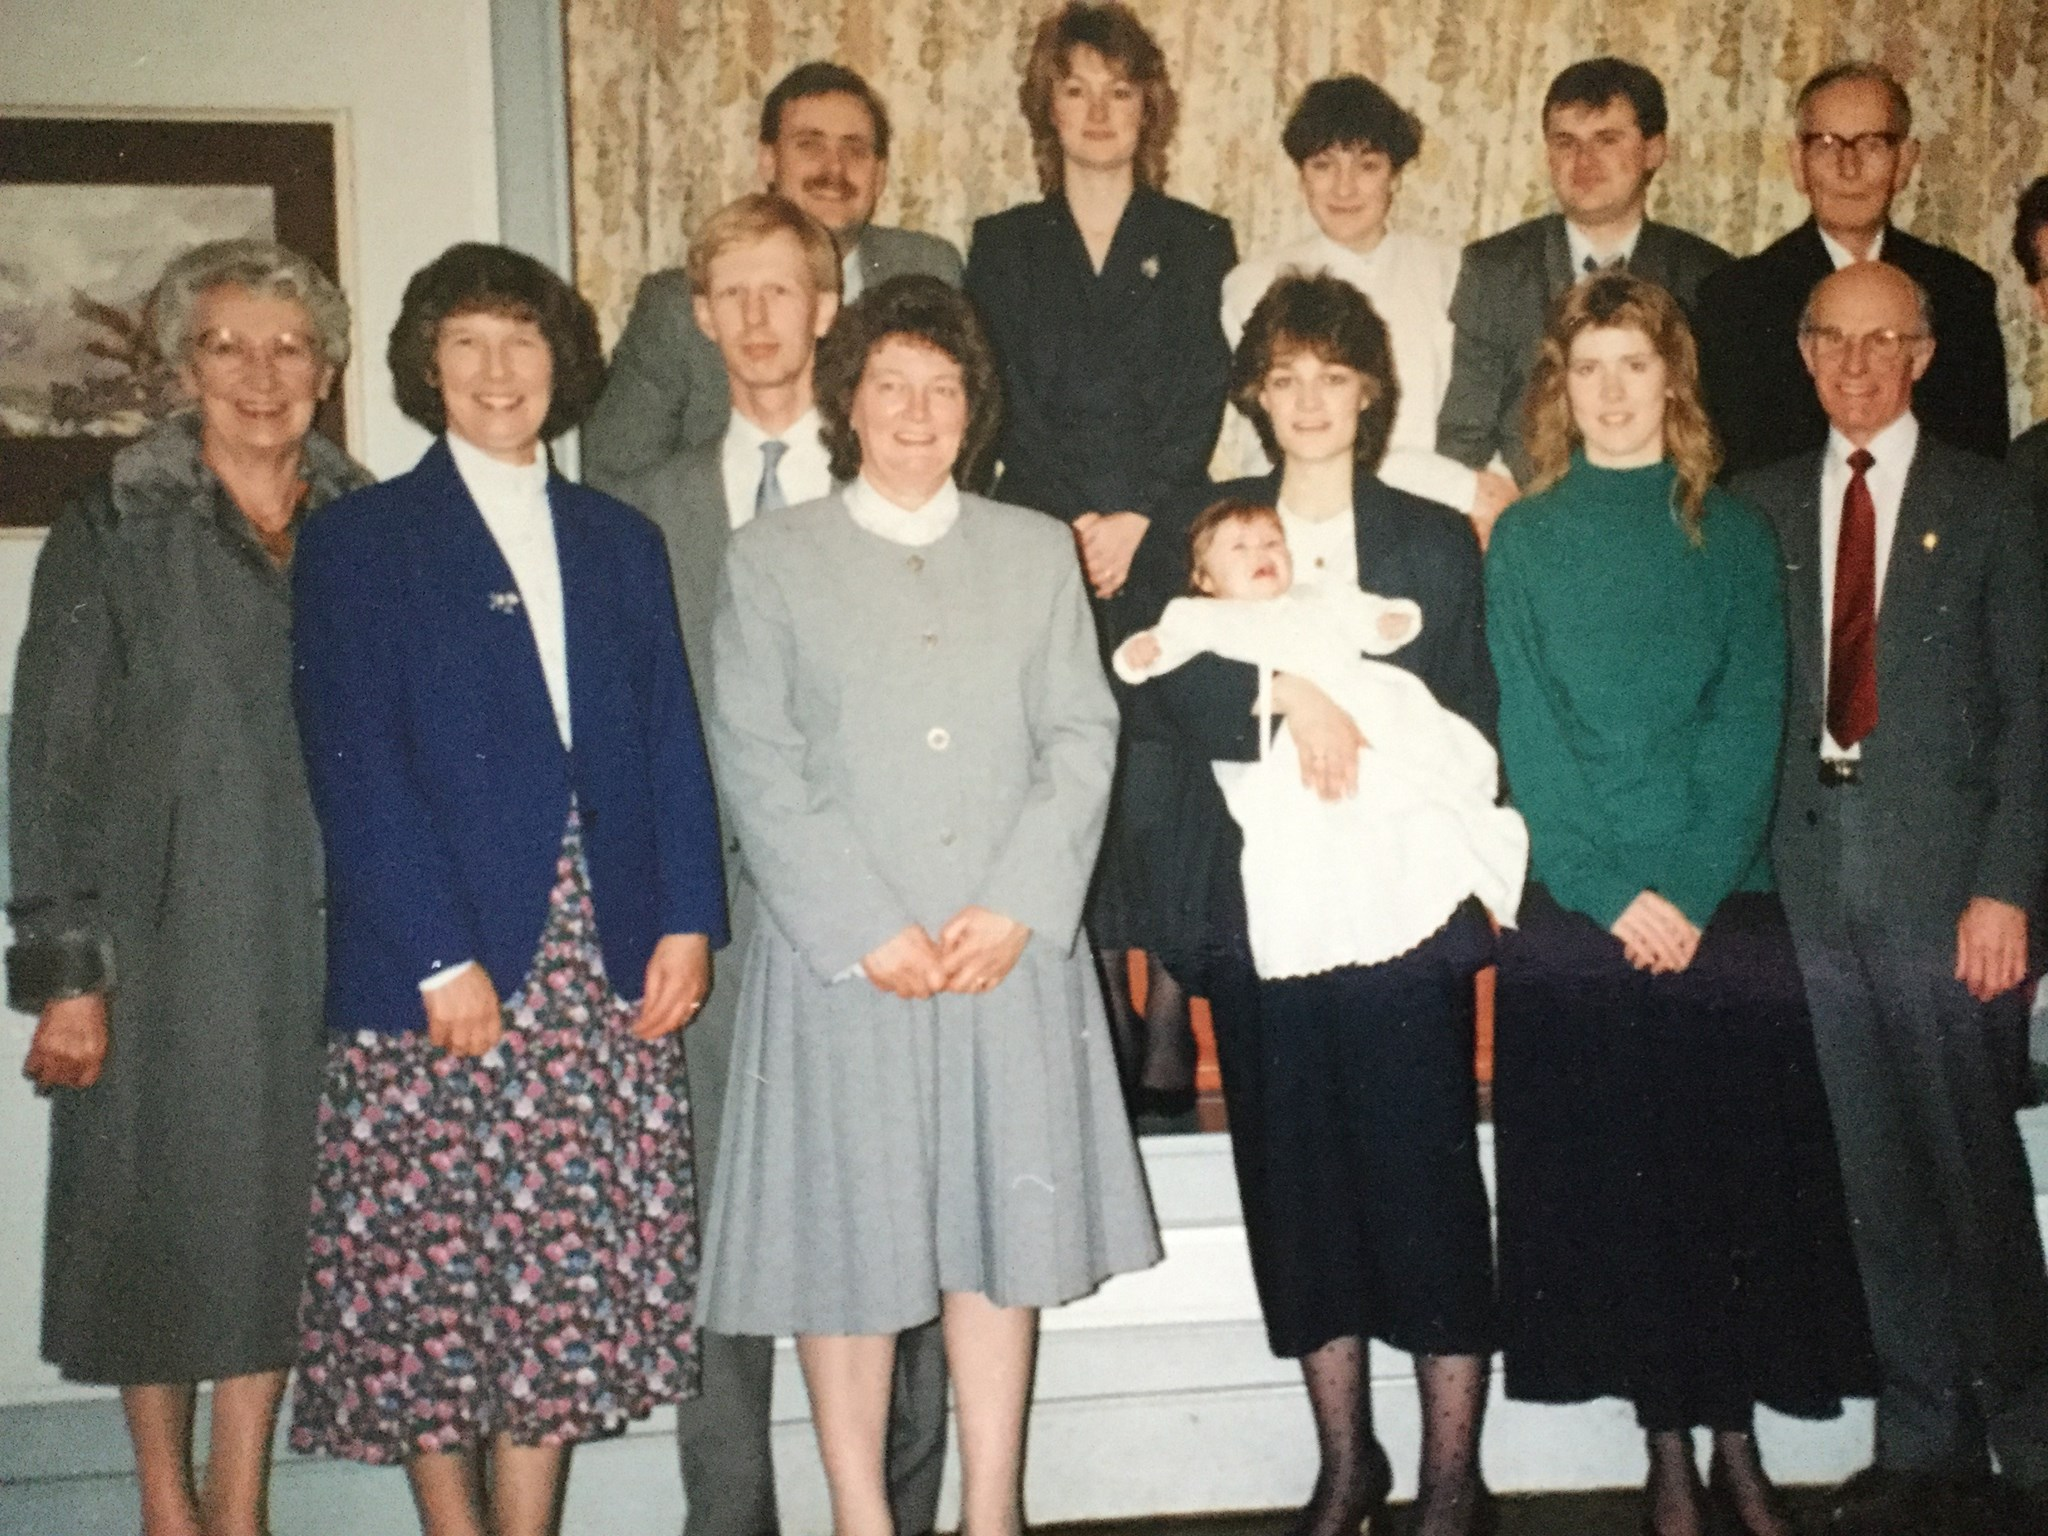 'Adopted' great grandma at Lauren's christening - 17.2.91